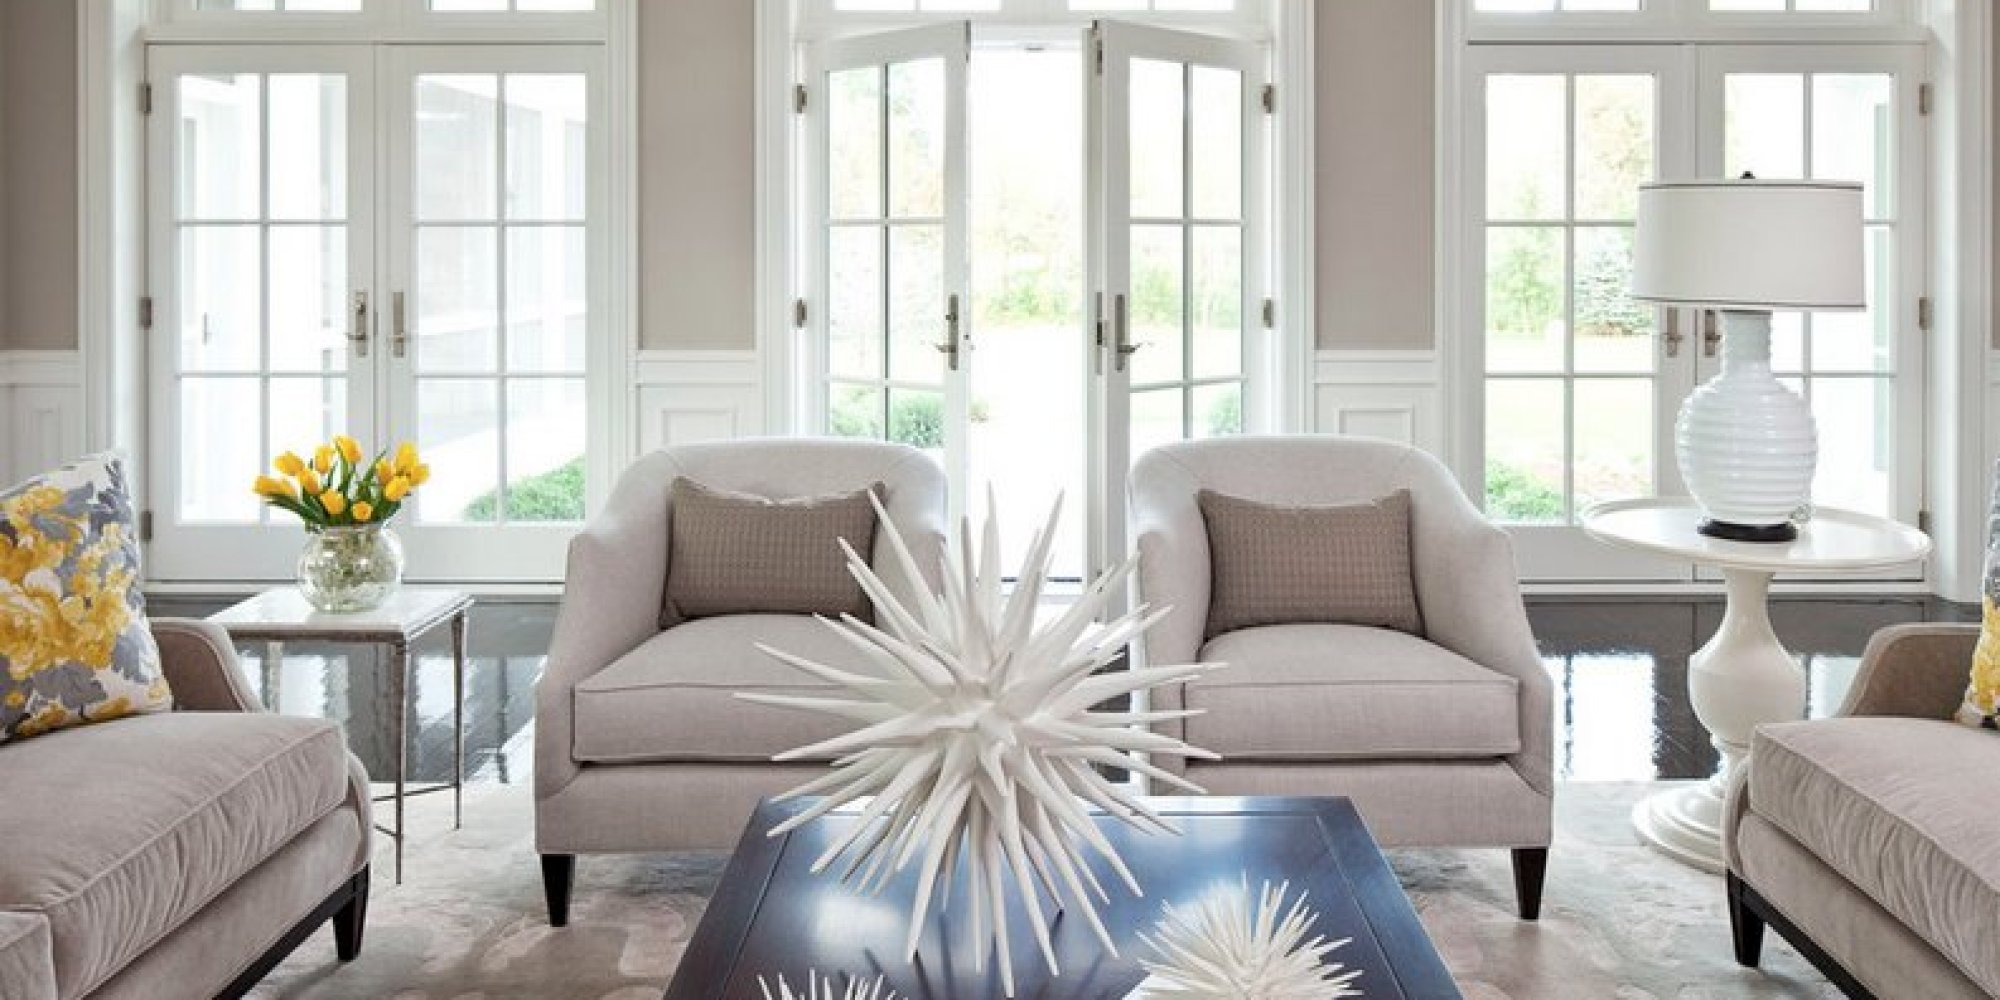 The 8 best neutral paint colors that 39 ll work in any home - Neutral colors to paint a living room ...